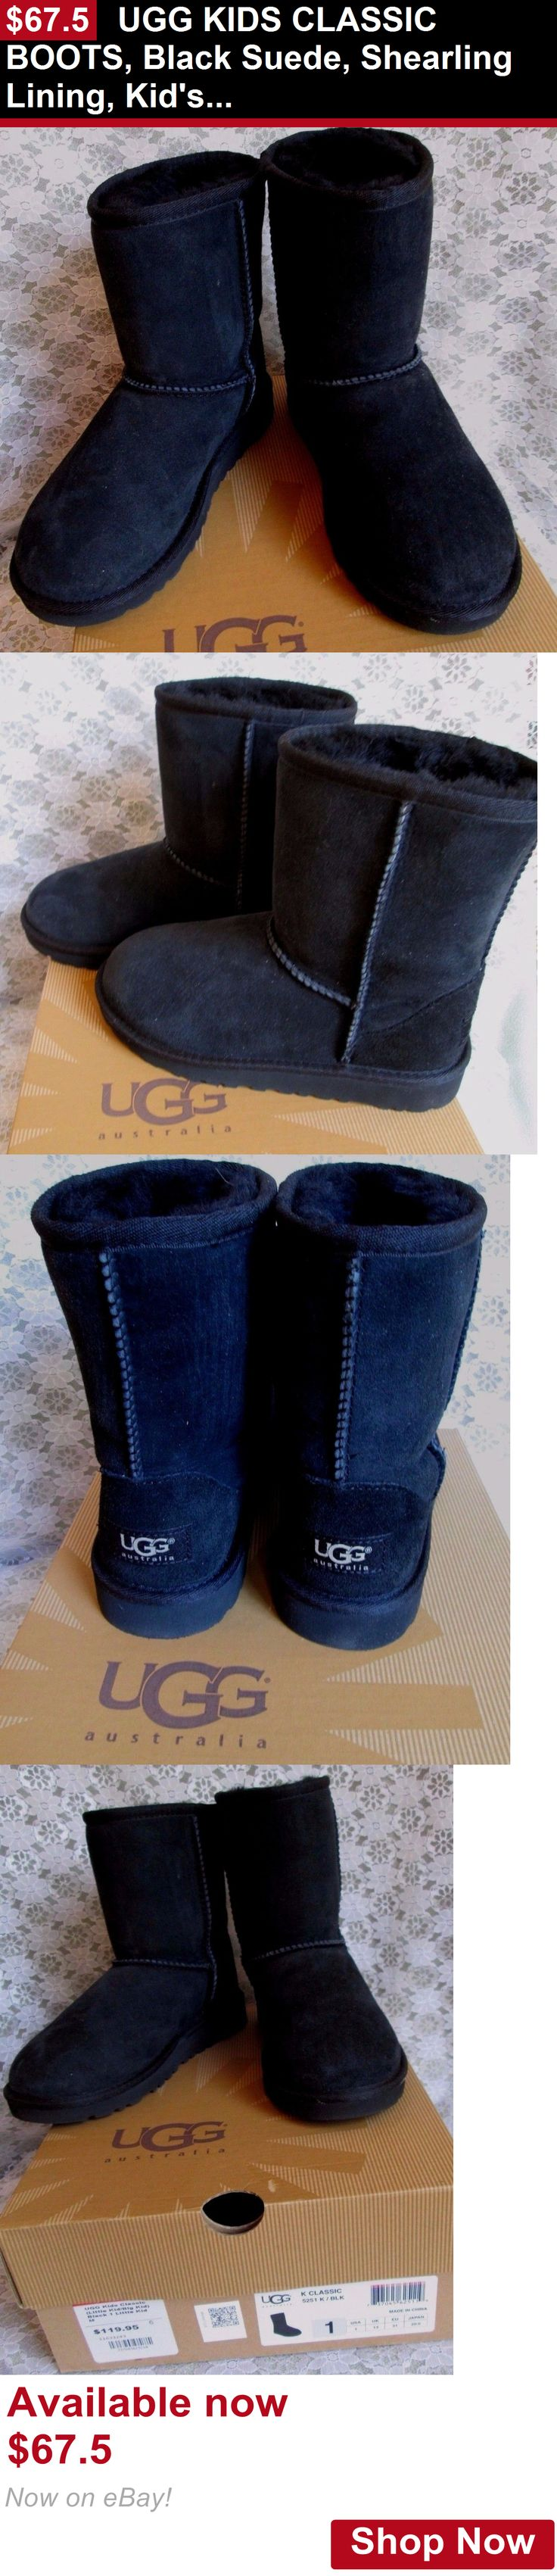 Children girls clothing shoes and accessories: Ugg Kids Classic Boots, Black Suede, Shearling Lining, Kids 1 Medium, $120 New BUY IT NOW ONLY: $67.5